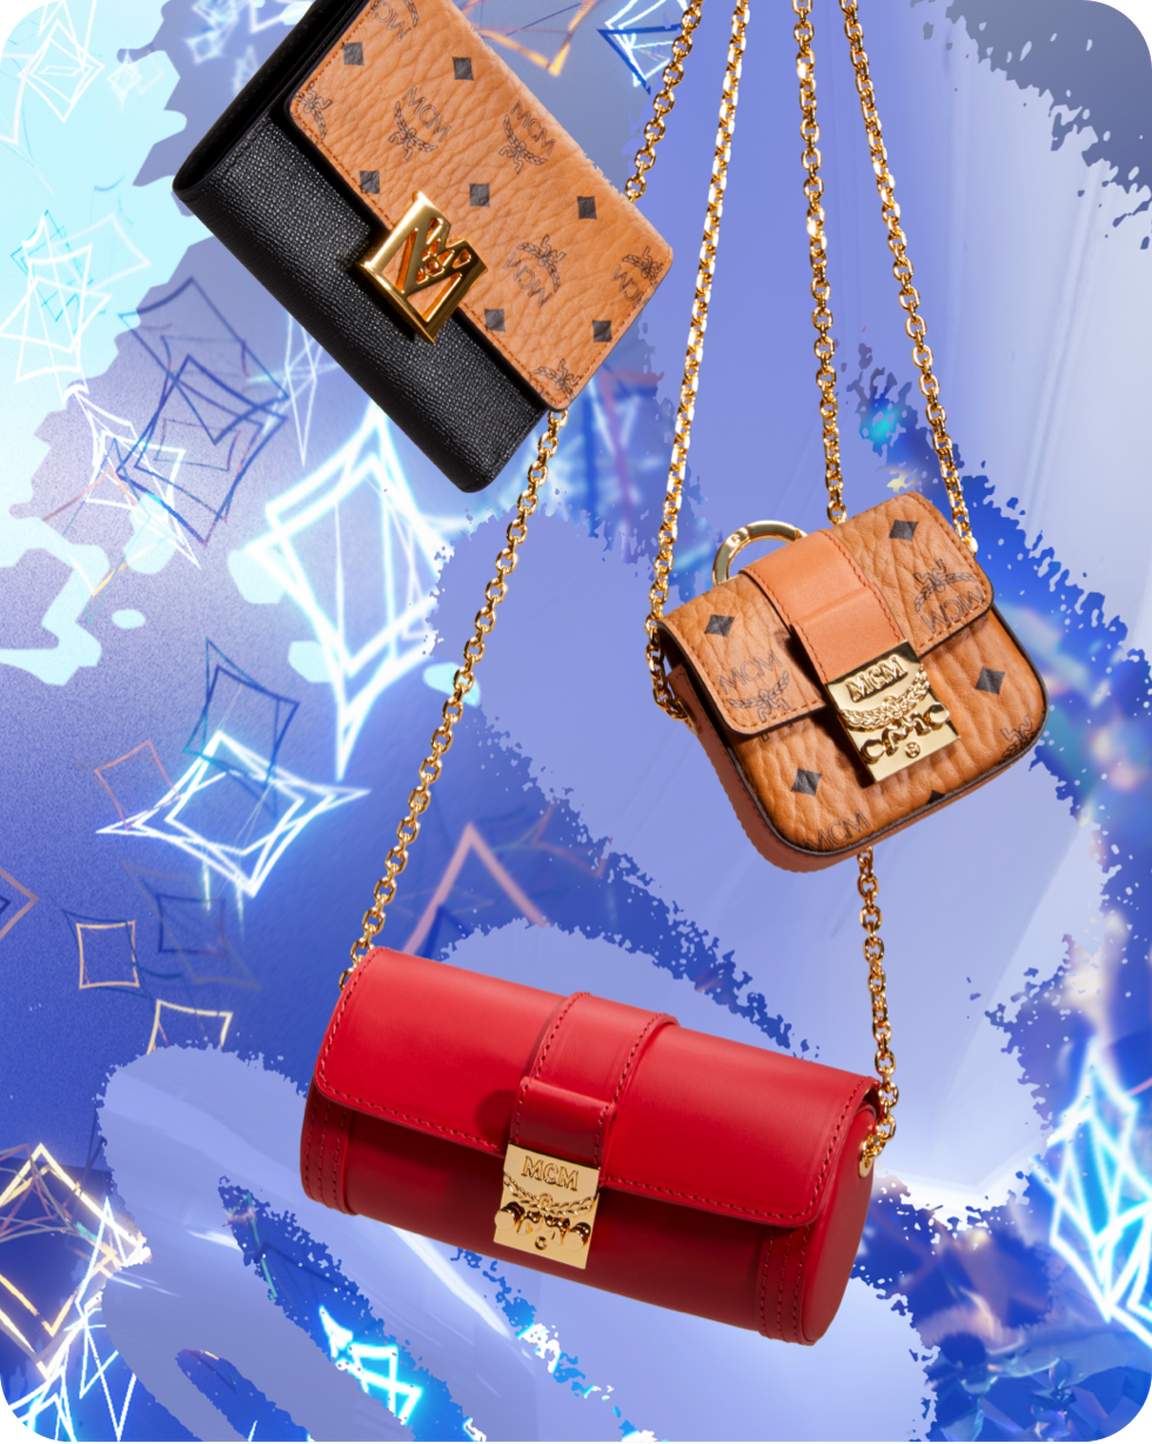 SHOP MCM GIFTS FOR HER